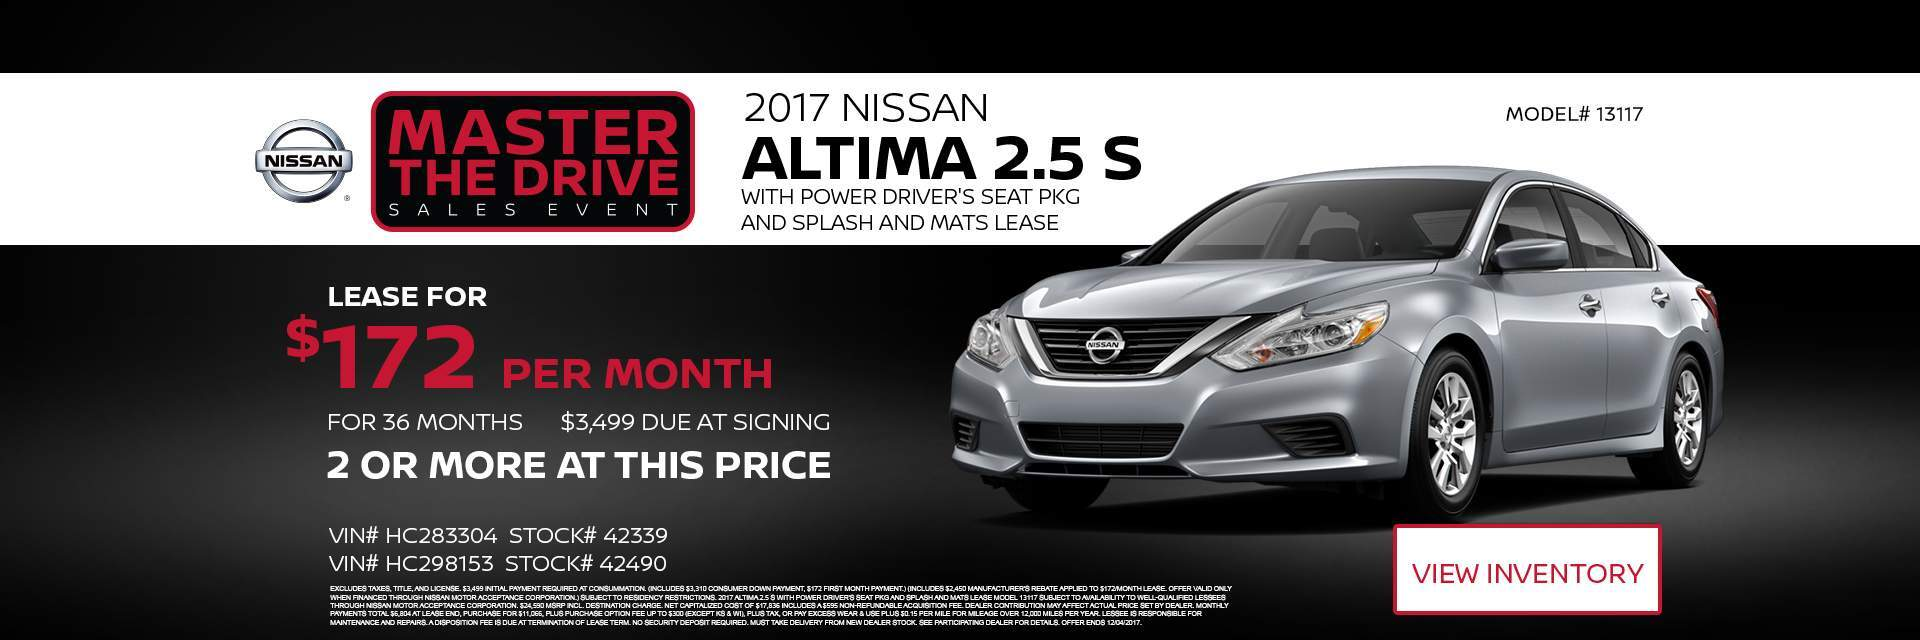 Master the drive sales event 2017 Nissan Altima 2.5 S